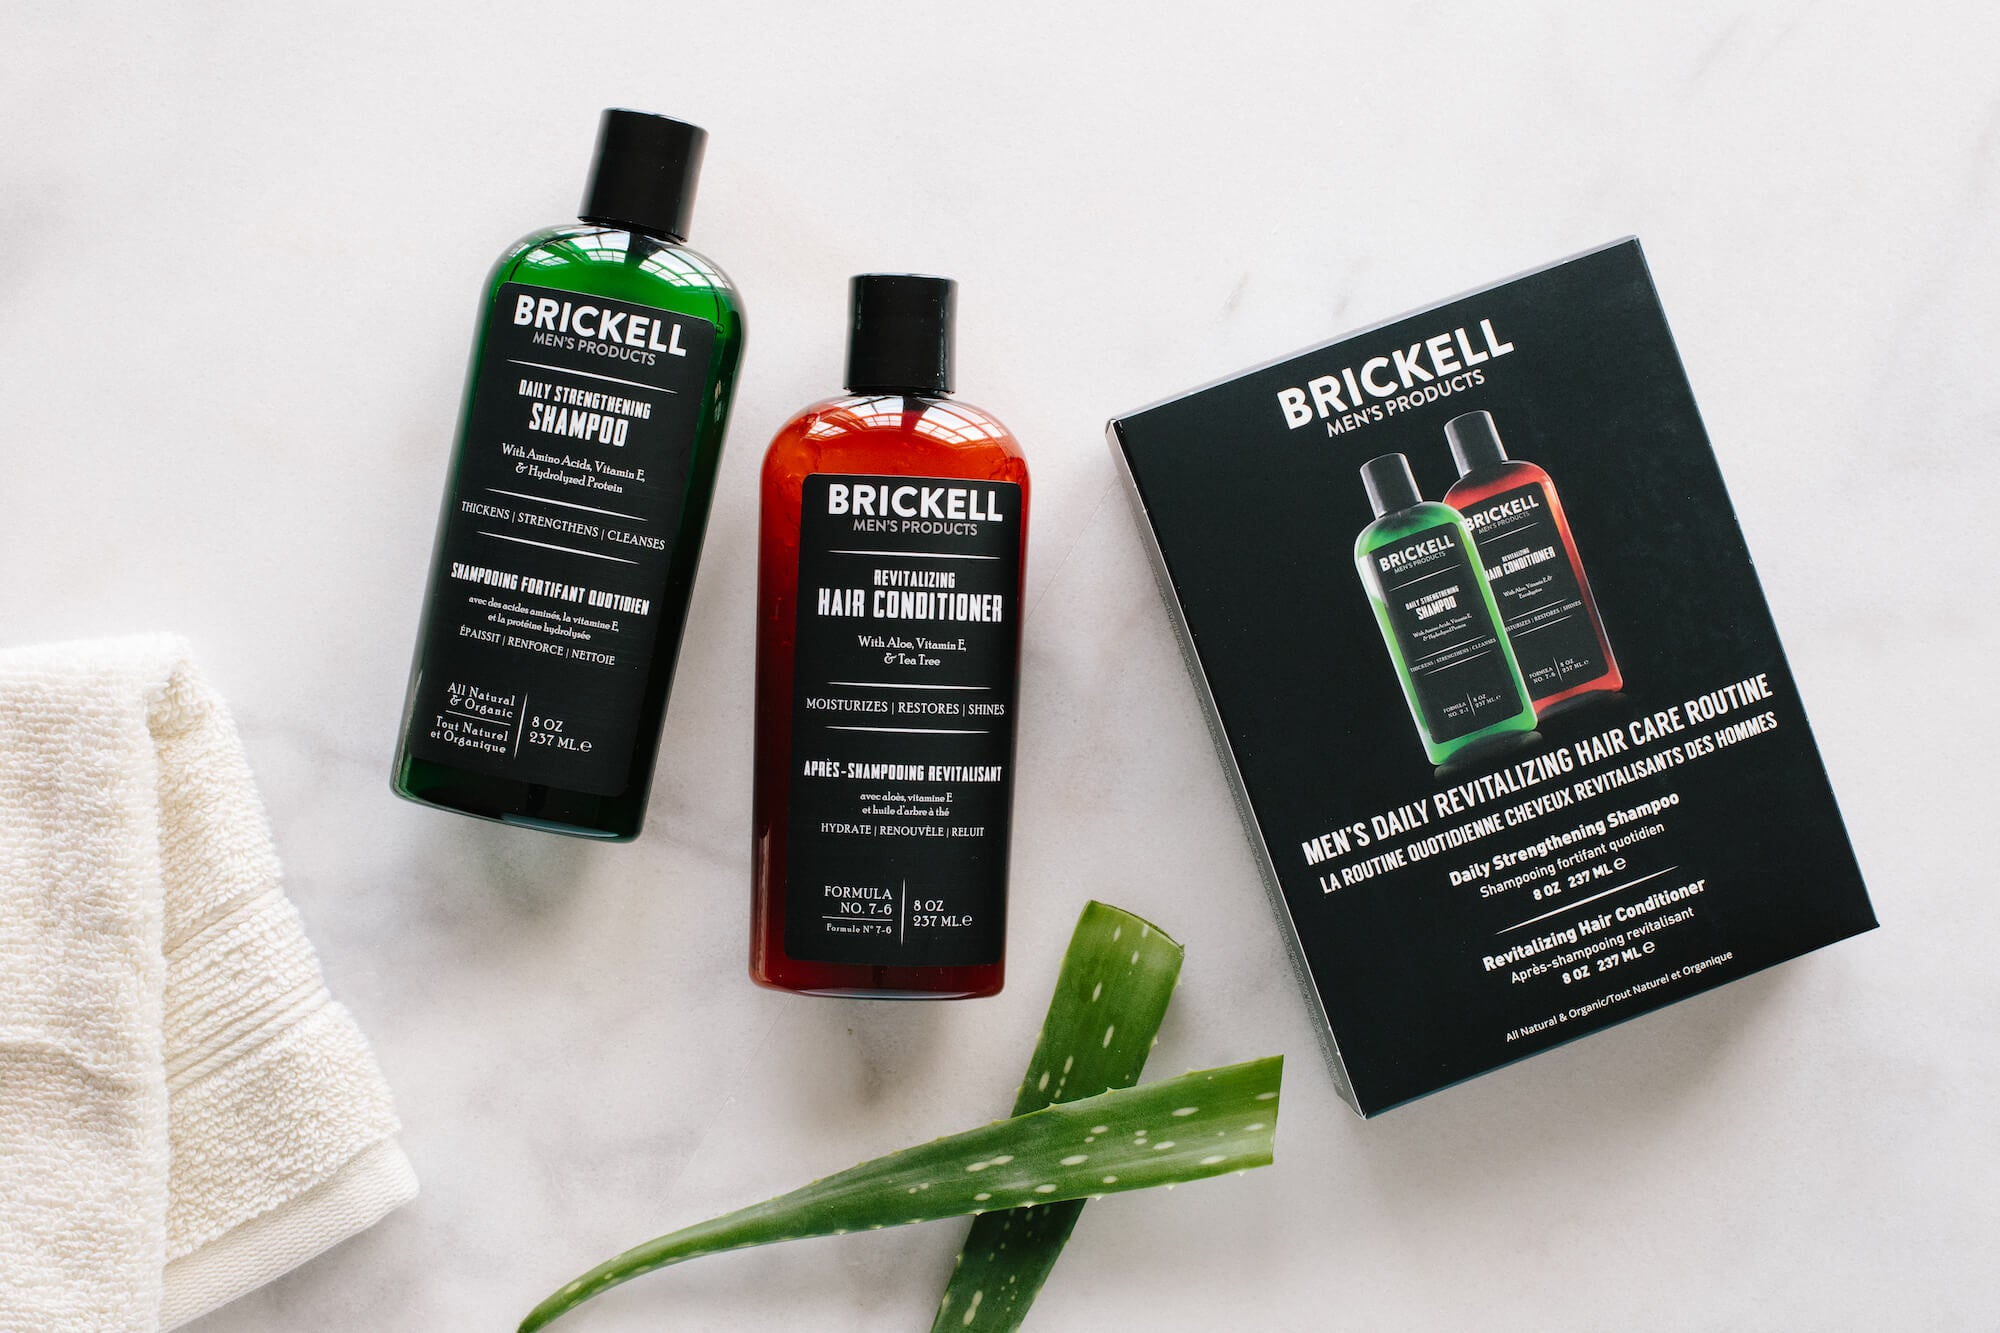 Daily Revitalizing Hair Routine